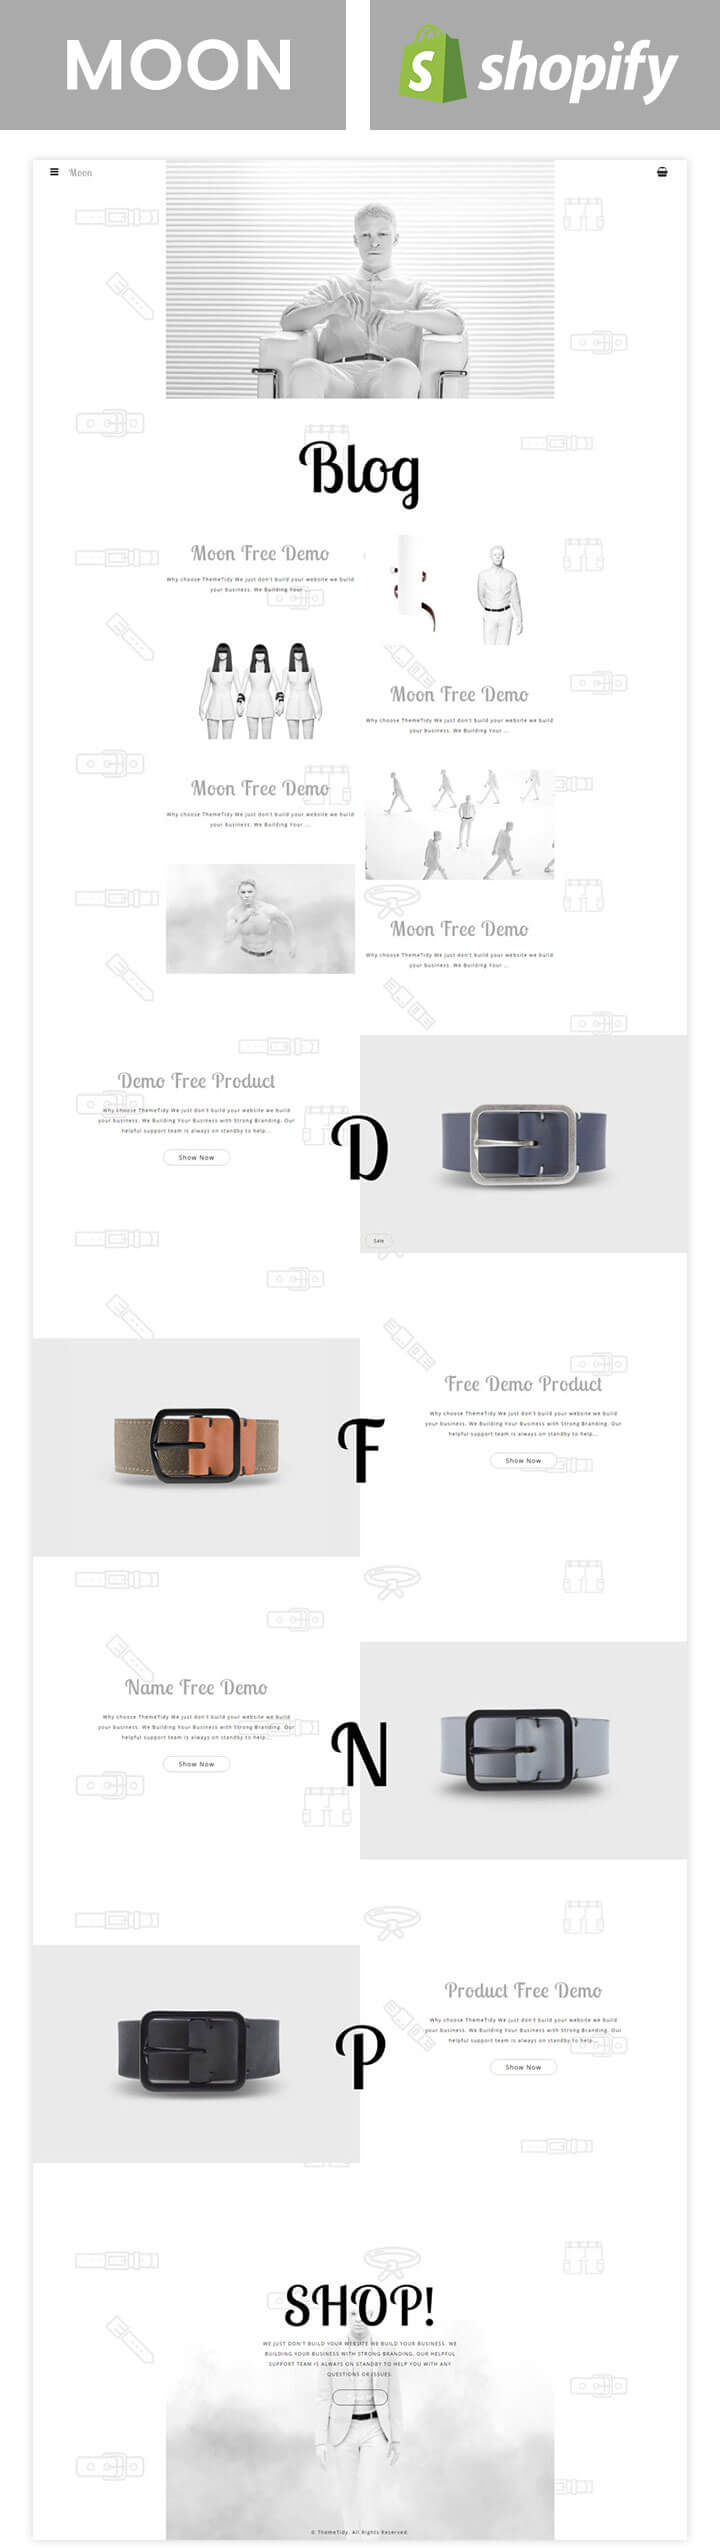 moon-formal-casual-belts-for-men-shopify-template-long-description-image-themetidy